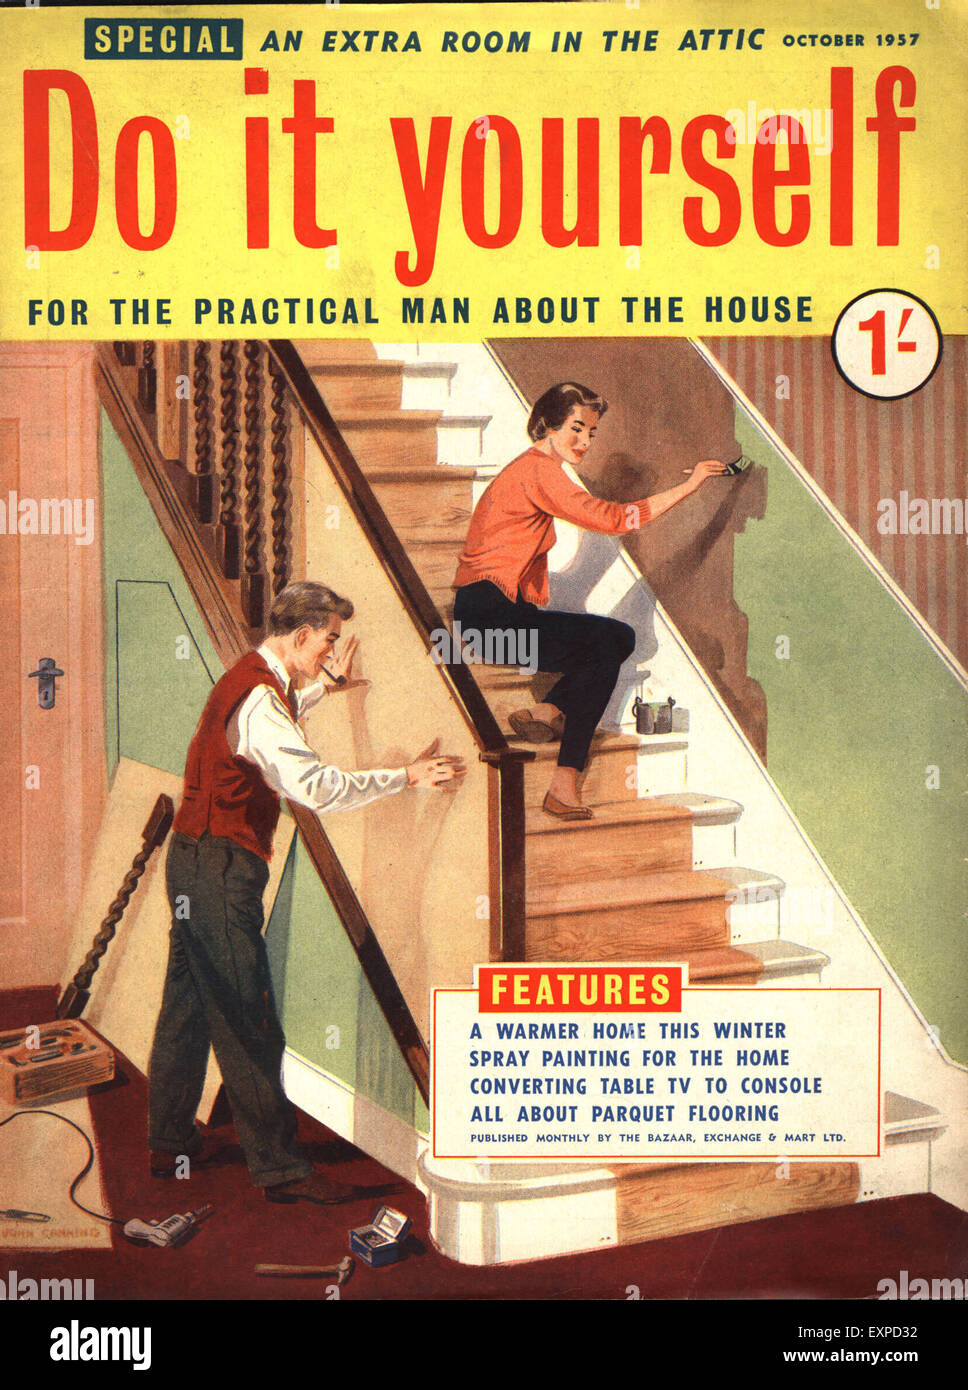 1950s uk do it yourself magazine cover stock photo 85315750 alamy 1950s uk do it yourself magazine cover solutioingenieria Gallery